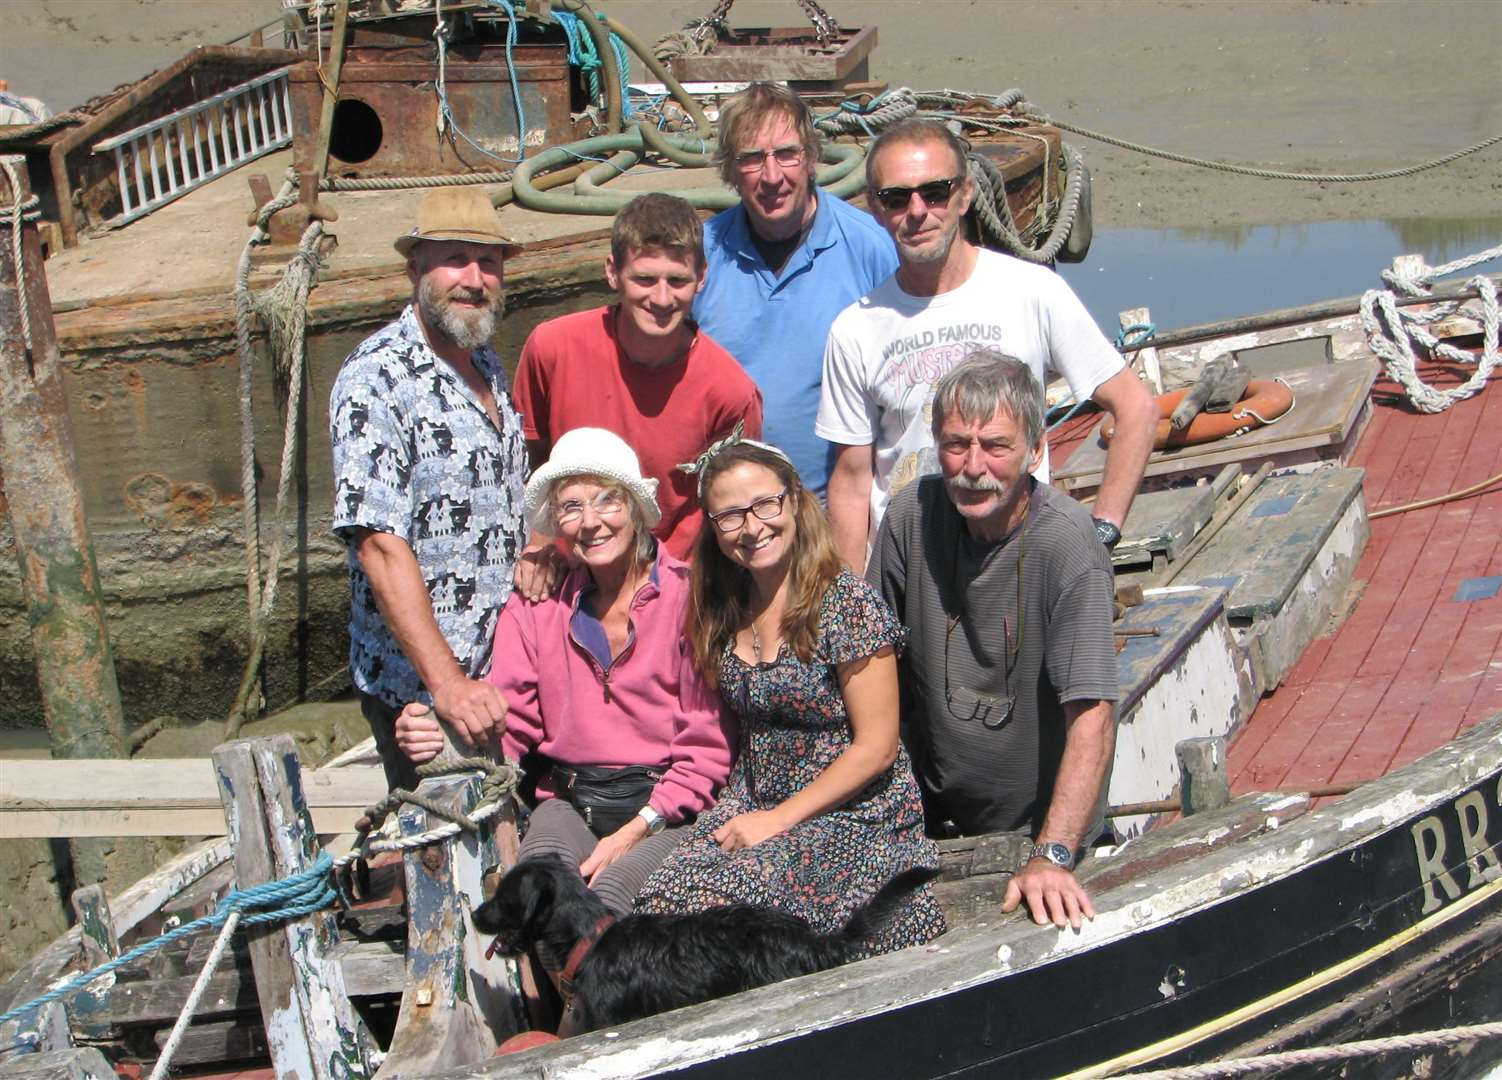 A save haven for Thistle at Faversham where she is being restored by (clockwise from top left) Ian Reekie, Morgan Lewis, Kerry McSwain, Andy Reeve, Bob Berk, Victoria Shorland and Lena Reekie